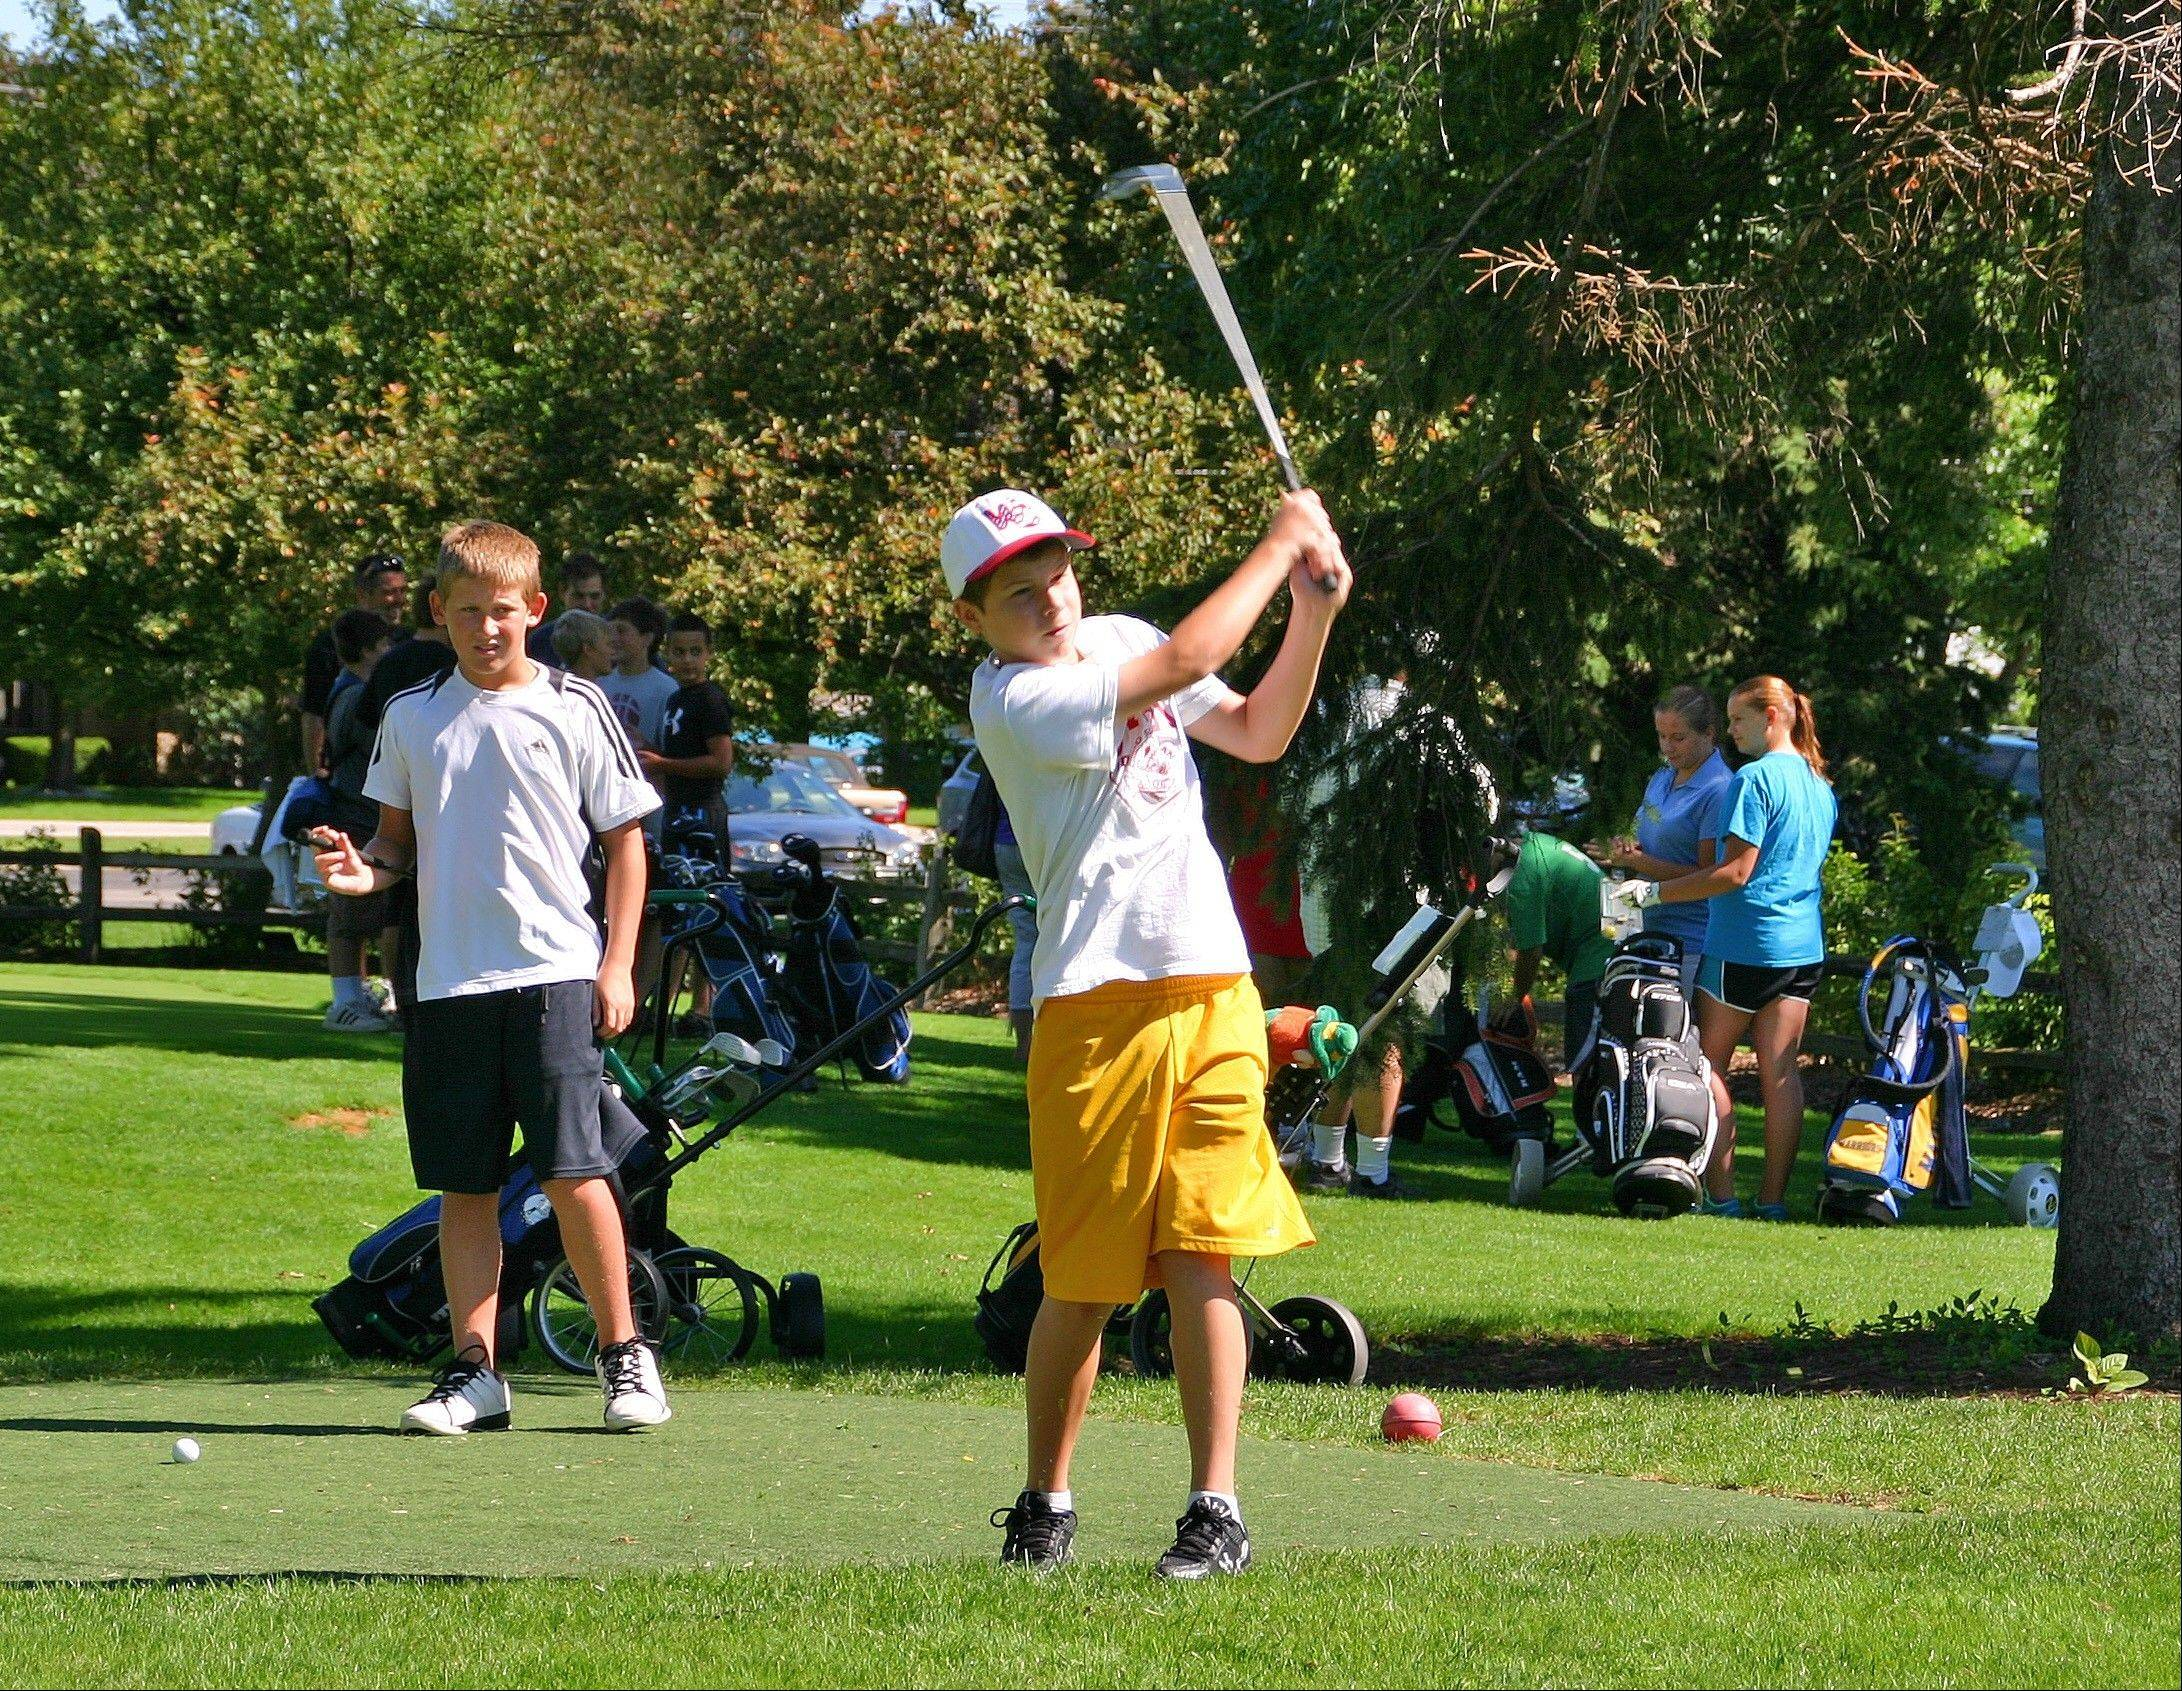 Thirty-one golfers teed off at the eighth annual Optimist Club Youth Golf Outing on Aug. 10, at Lake Park.